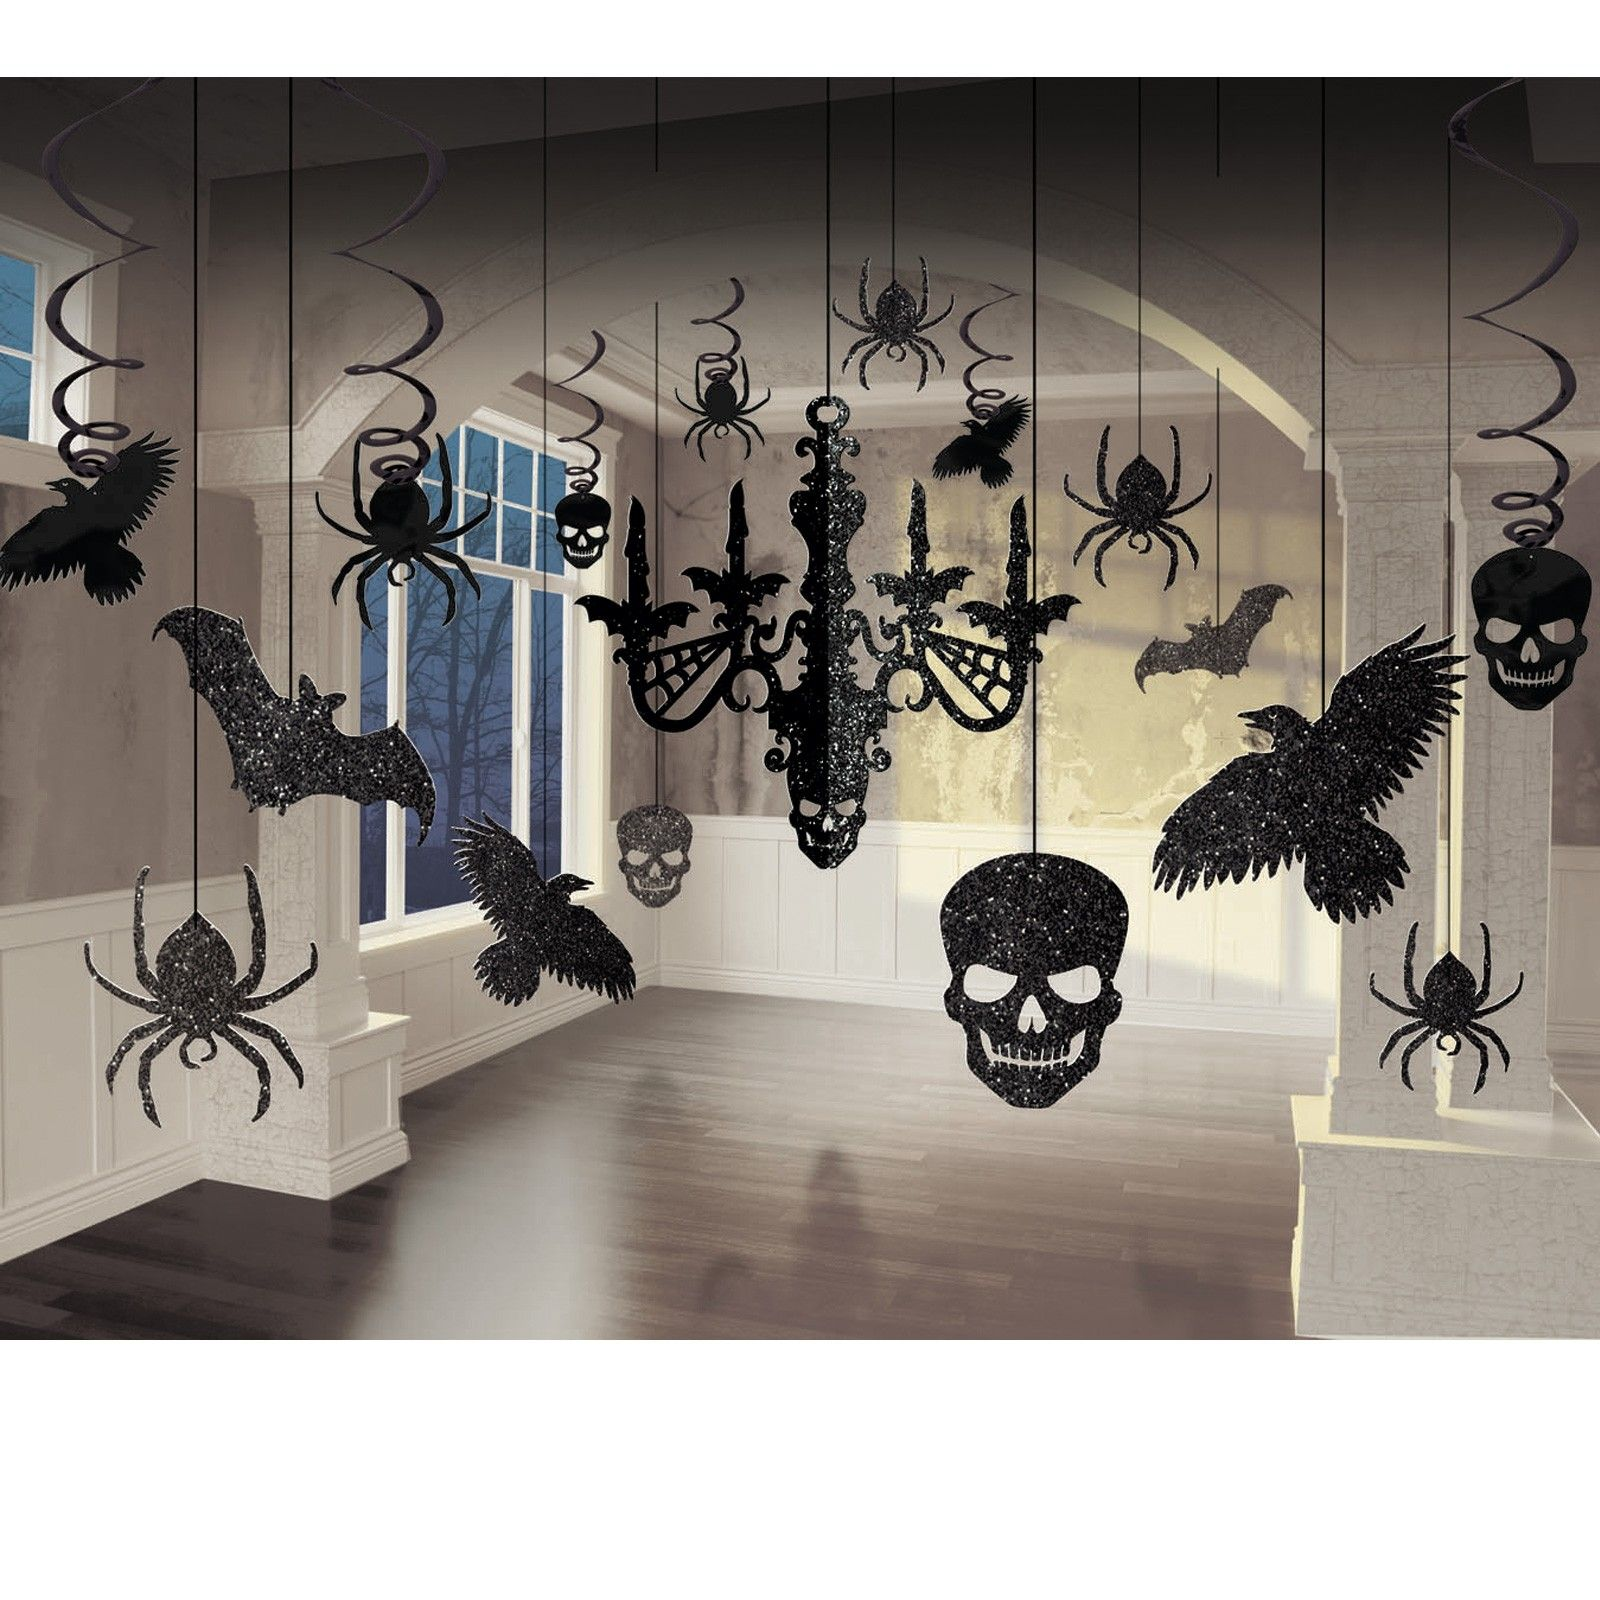 Glitter Chandelier Kit Black glitter, Scary and Halloween ideas - black and white halloween decorations